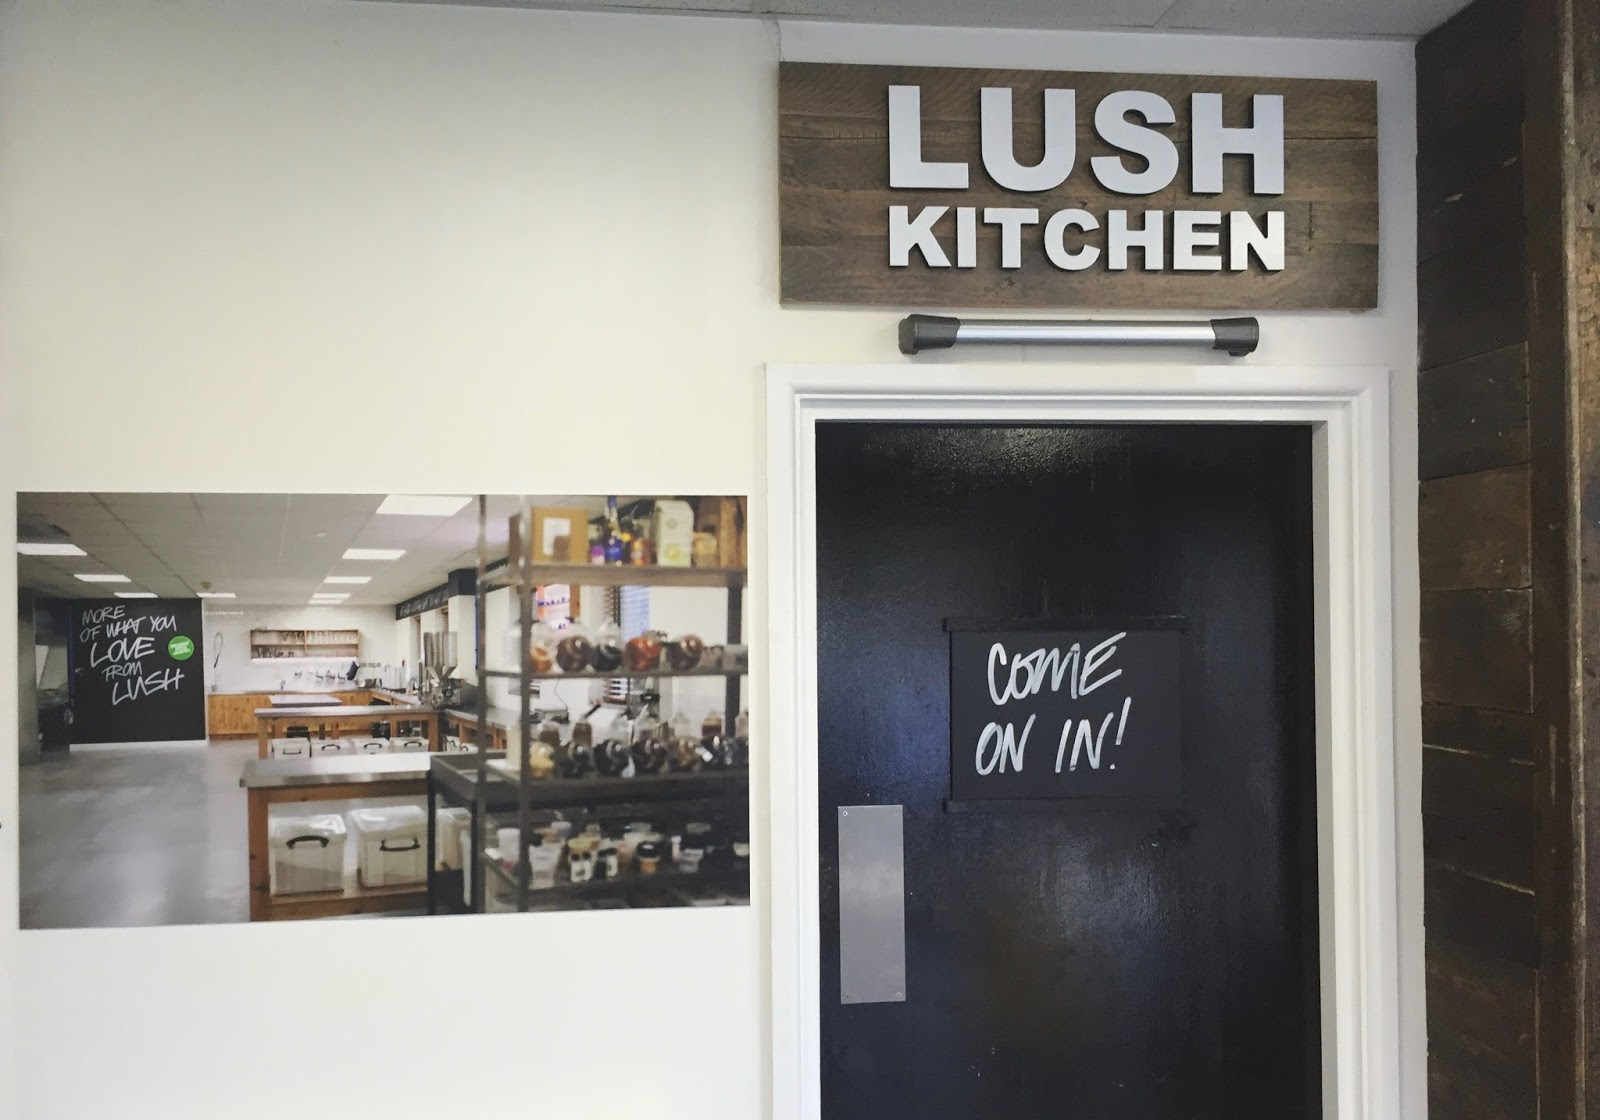 All Things Lush UK: My Lush Kitchen Experience Part 1